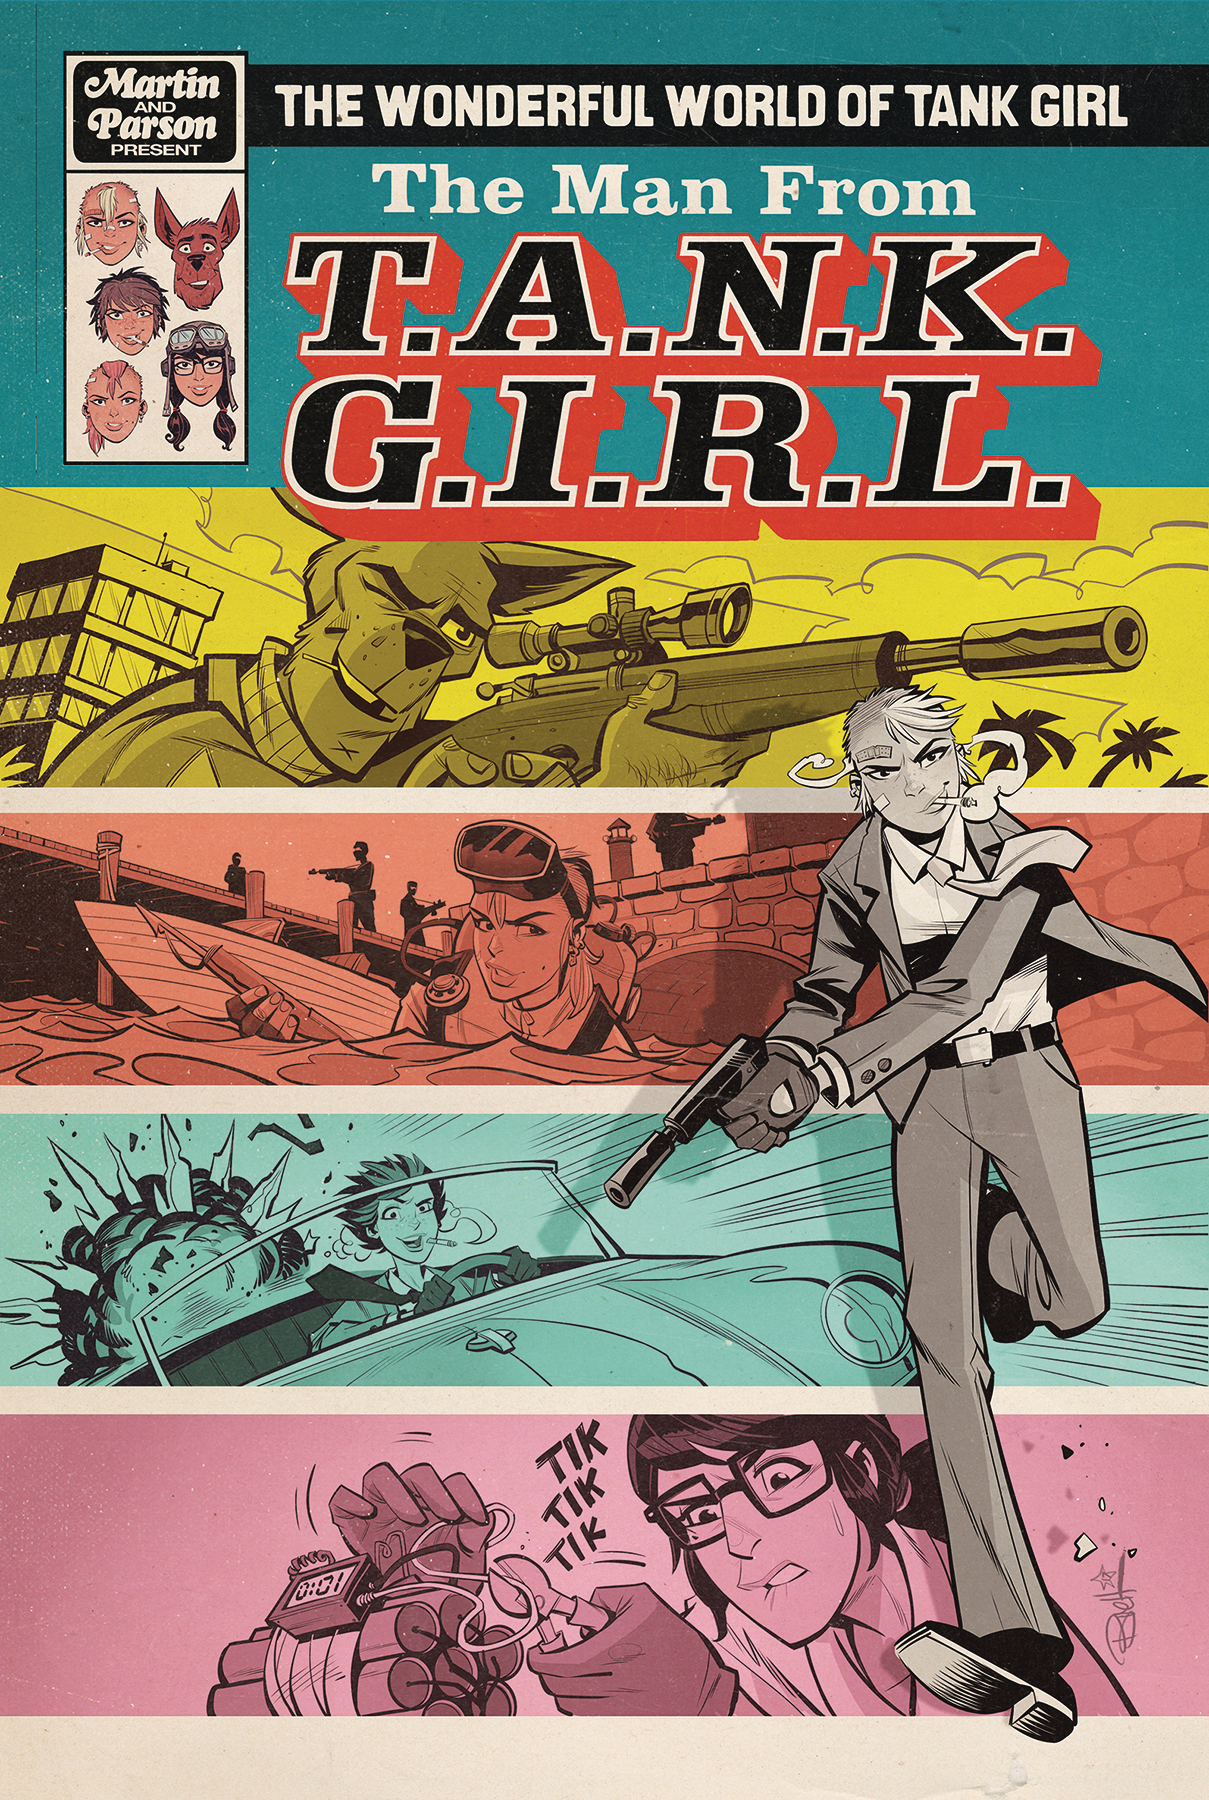 WONDERFUL WORLD OF TANK GIRL #3 CVR A PARSON